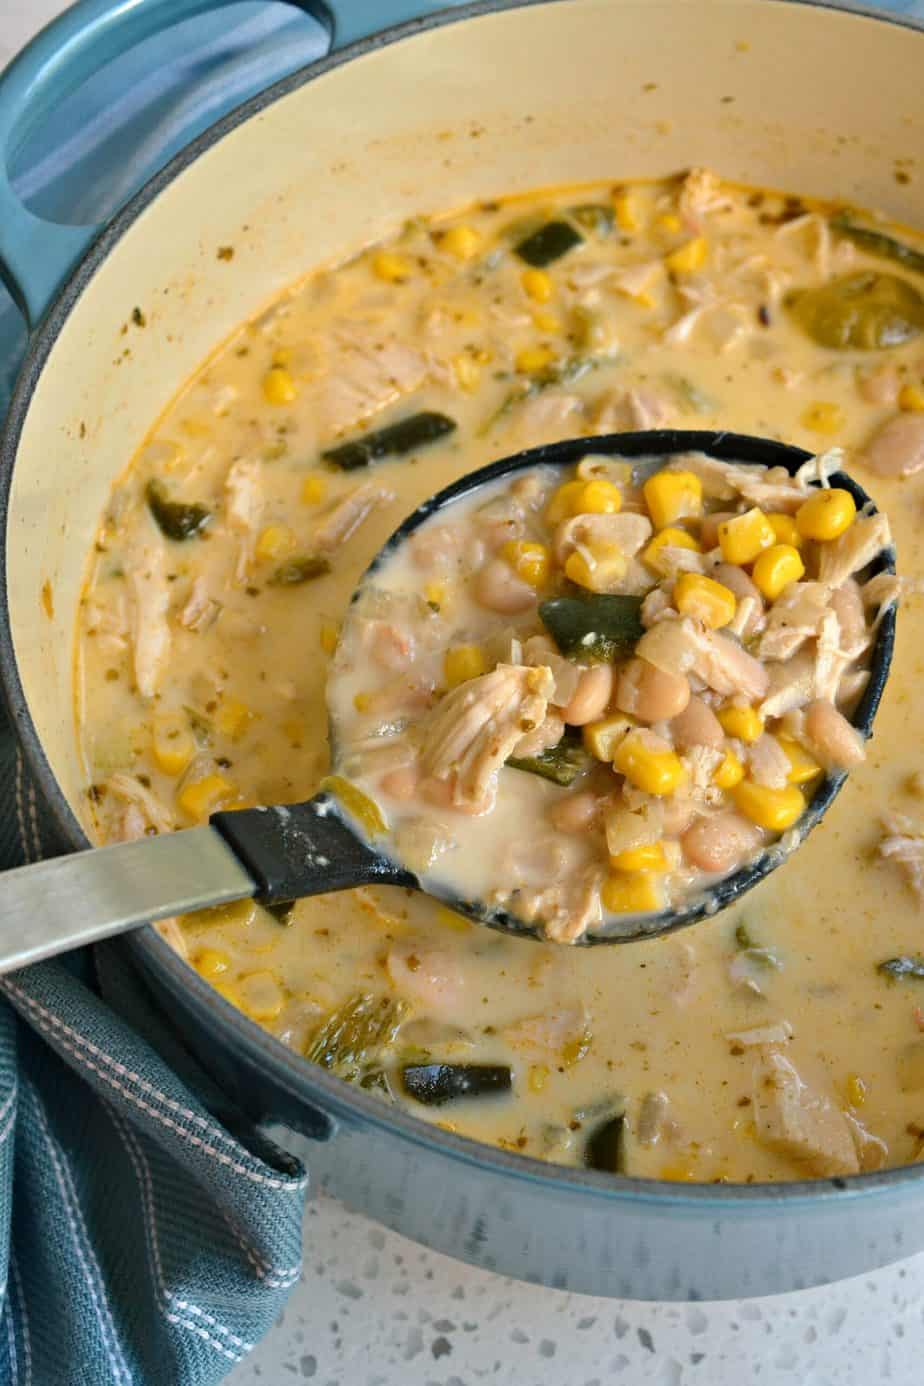 This White Chicken Chili combines Great Northern beans, rotisserie chicken, sweet corn, poblano peppers and Anaheim peppers.